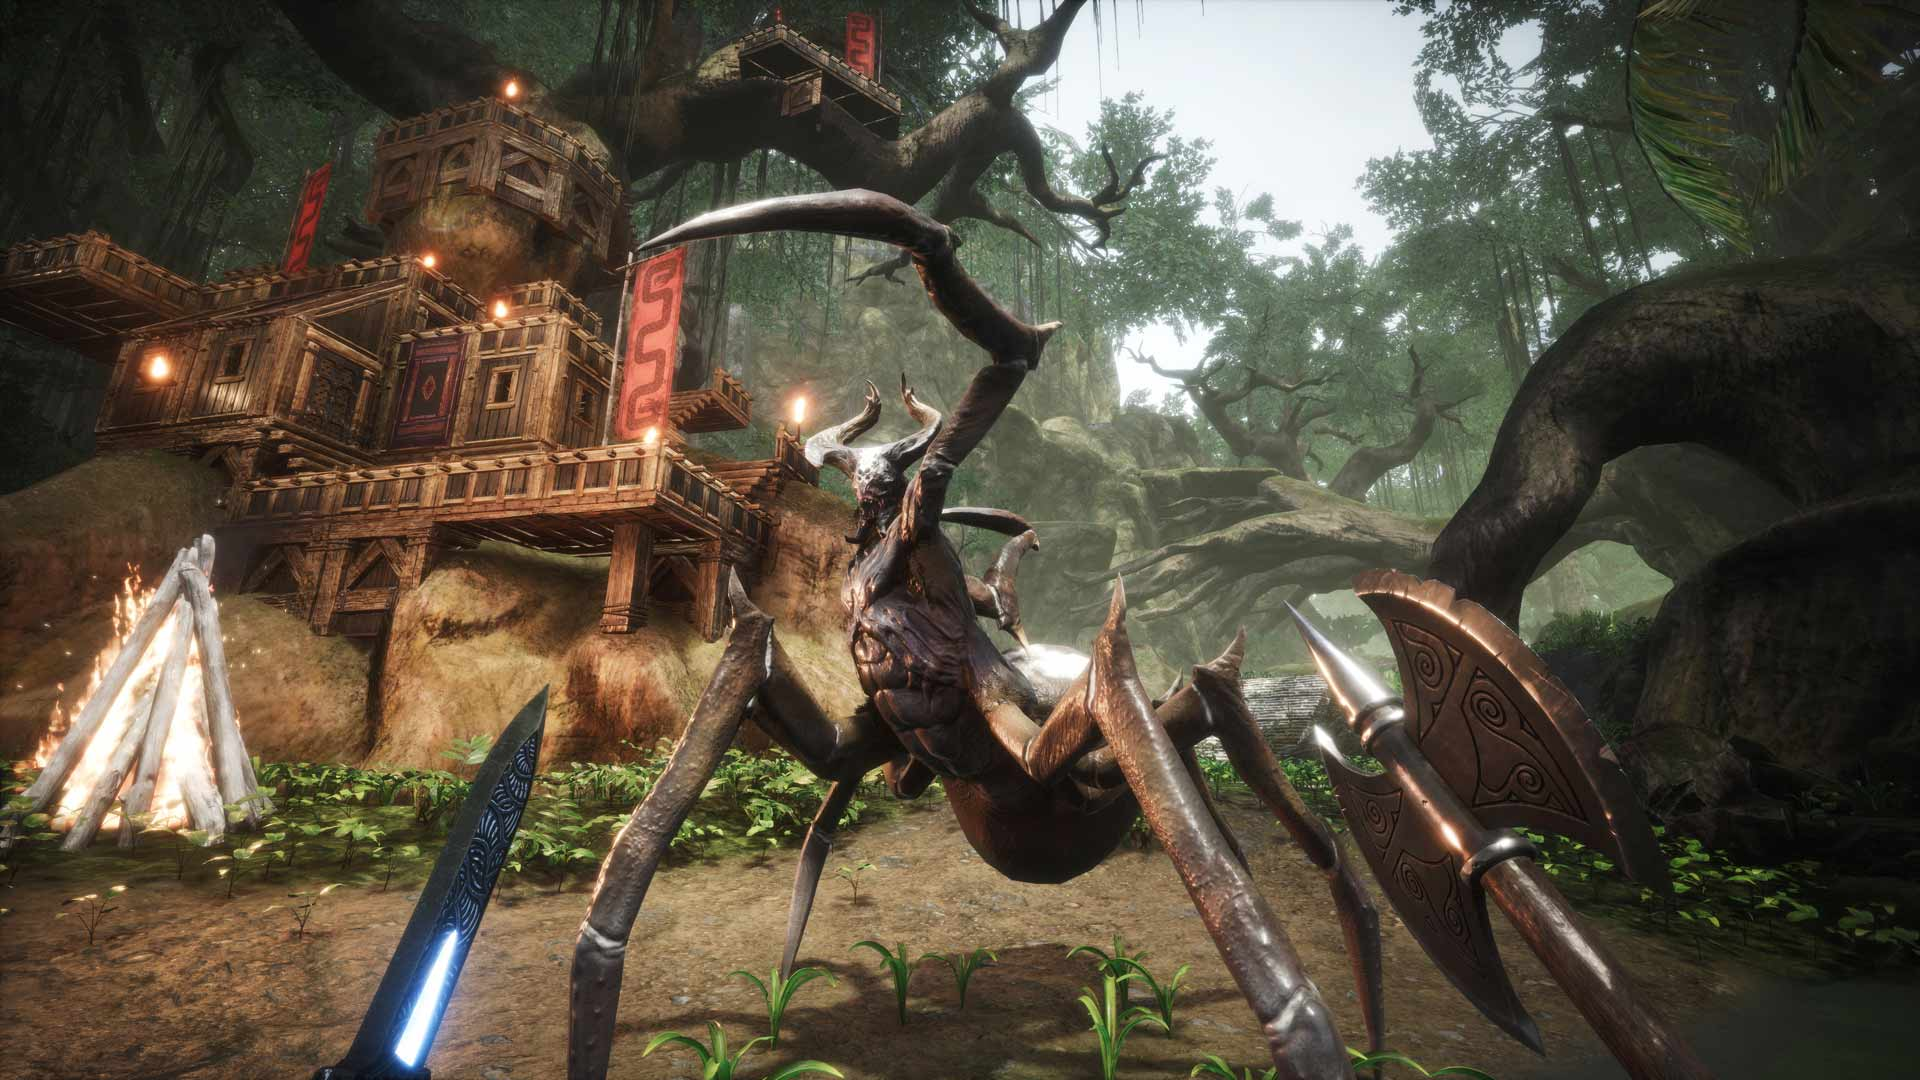 Conan Exiles is delaying mounts, pets, settlements, and sorcery to